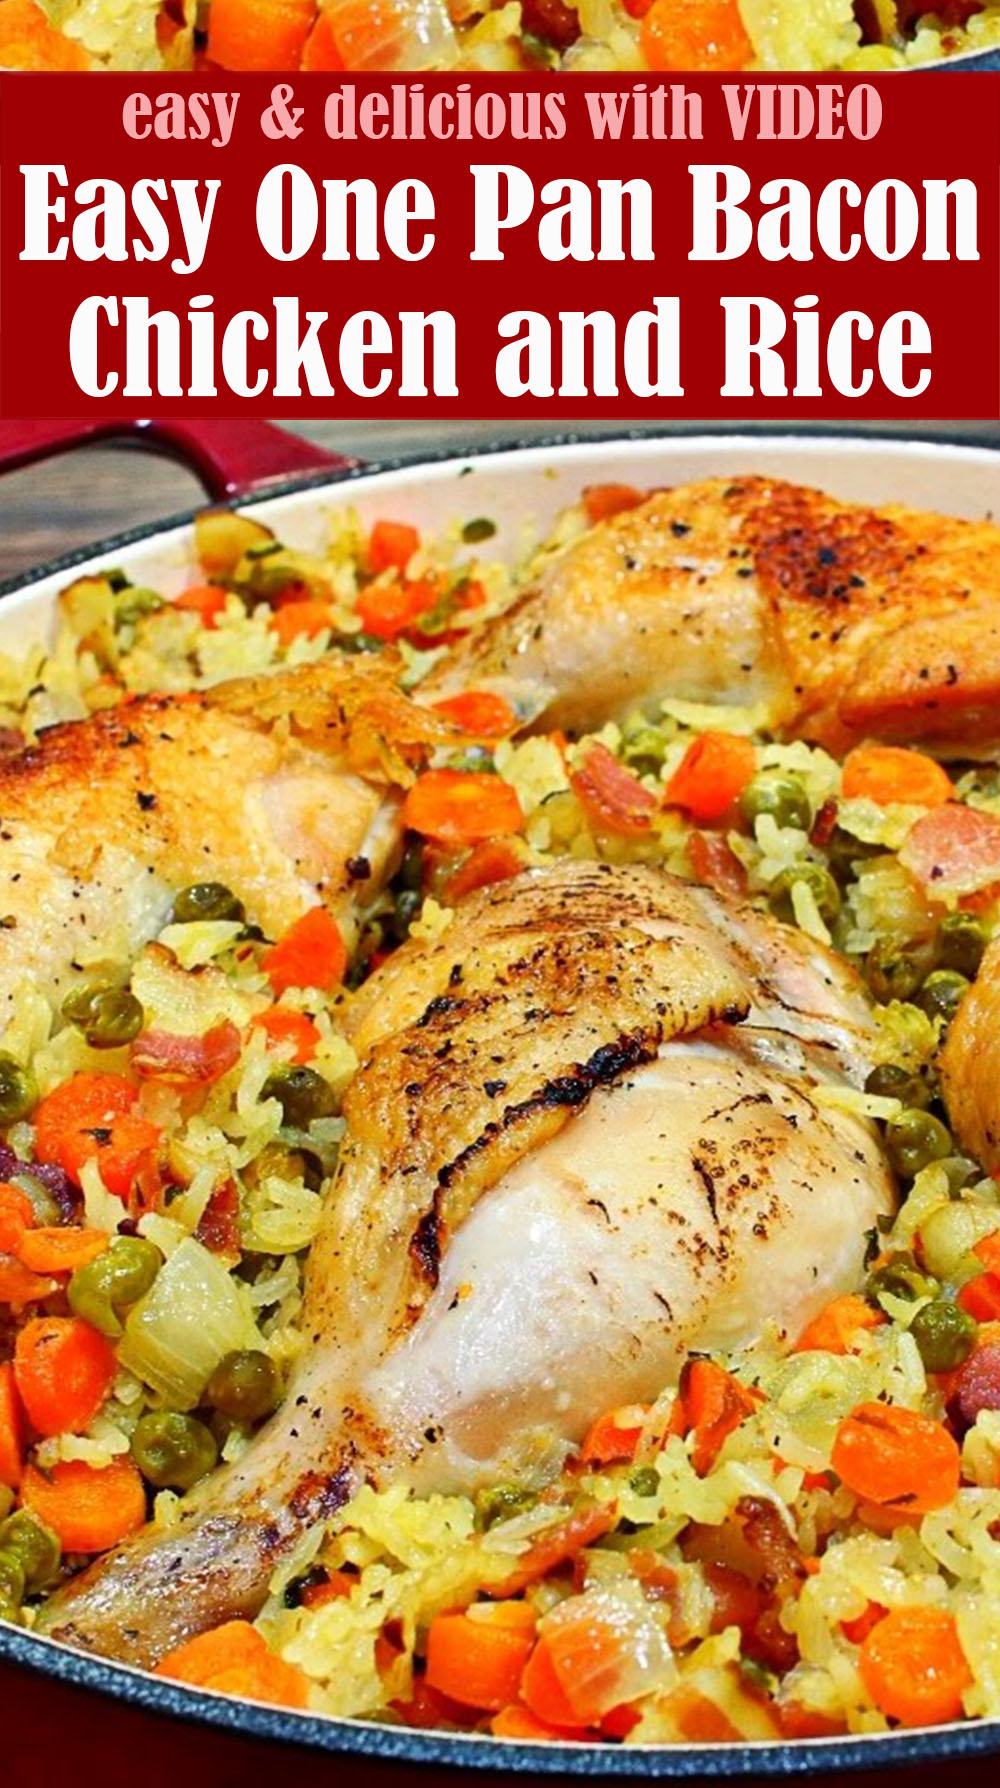 Easy One Pan Bacon Chicken and Rice